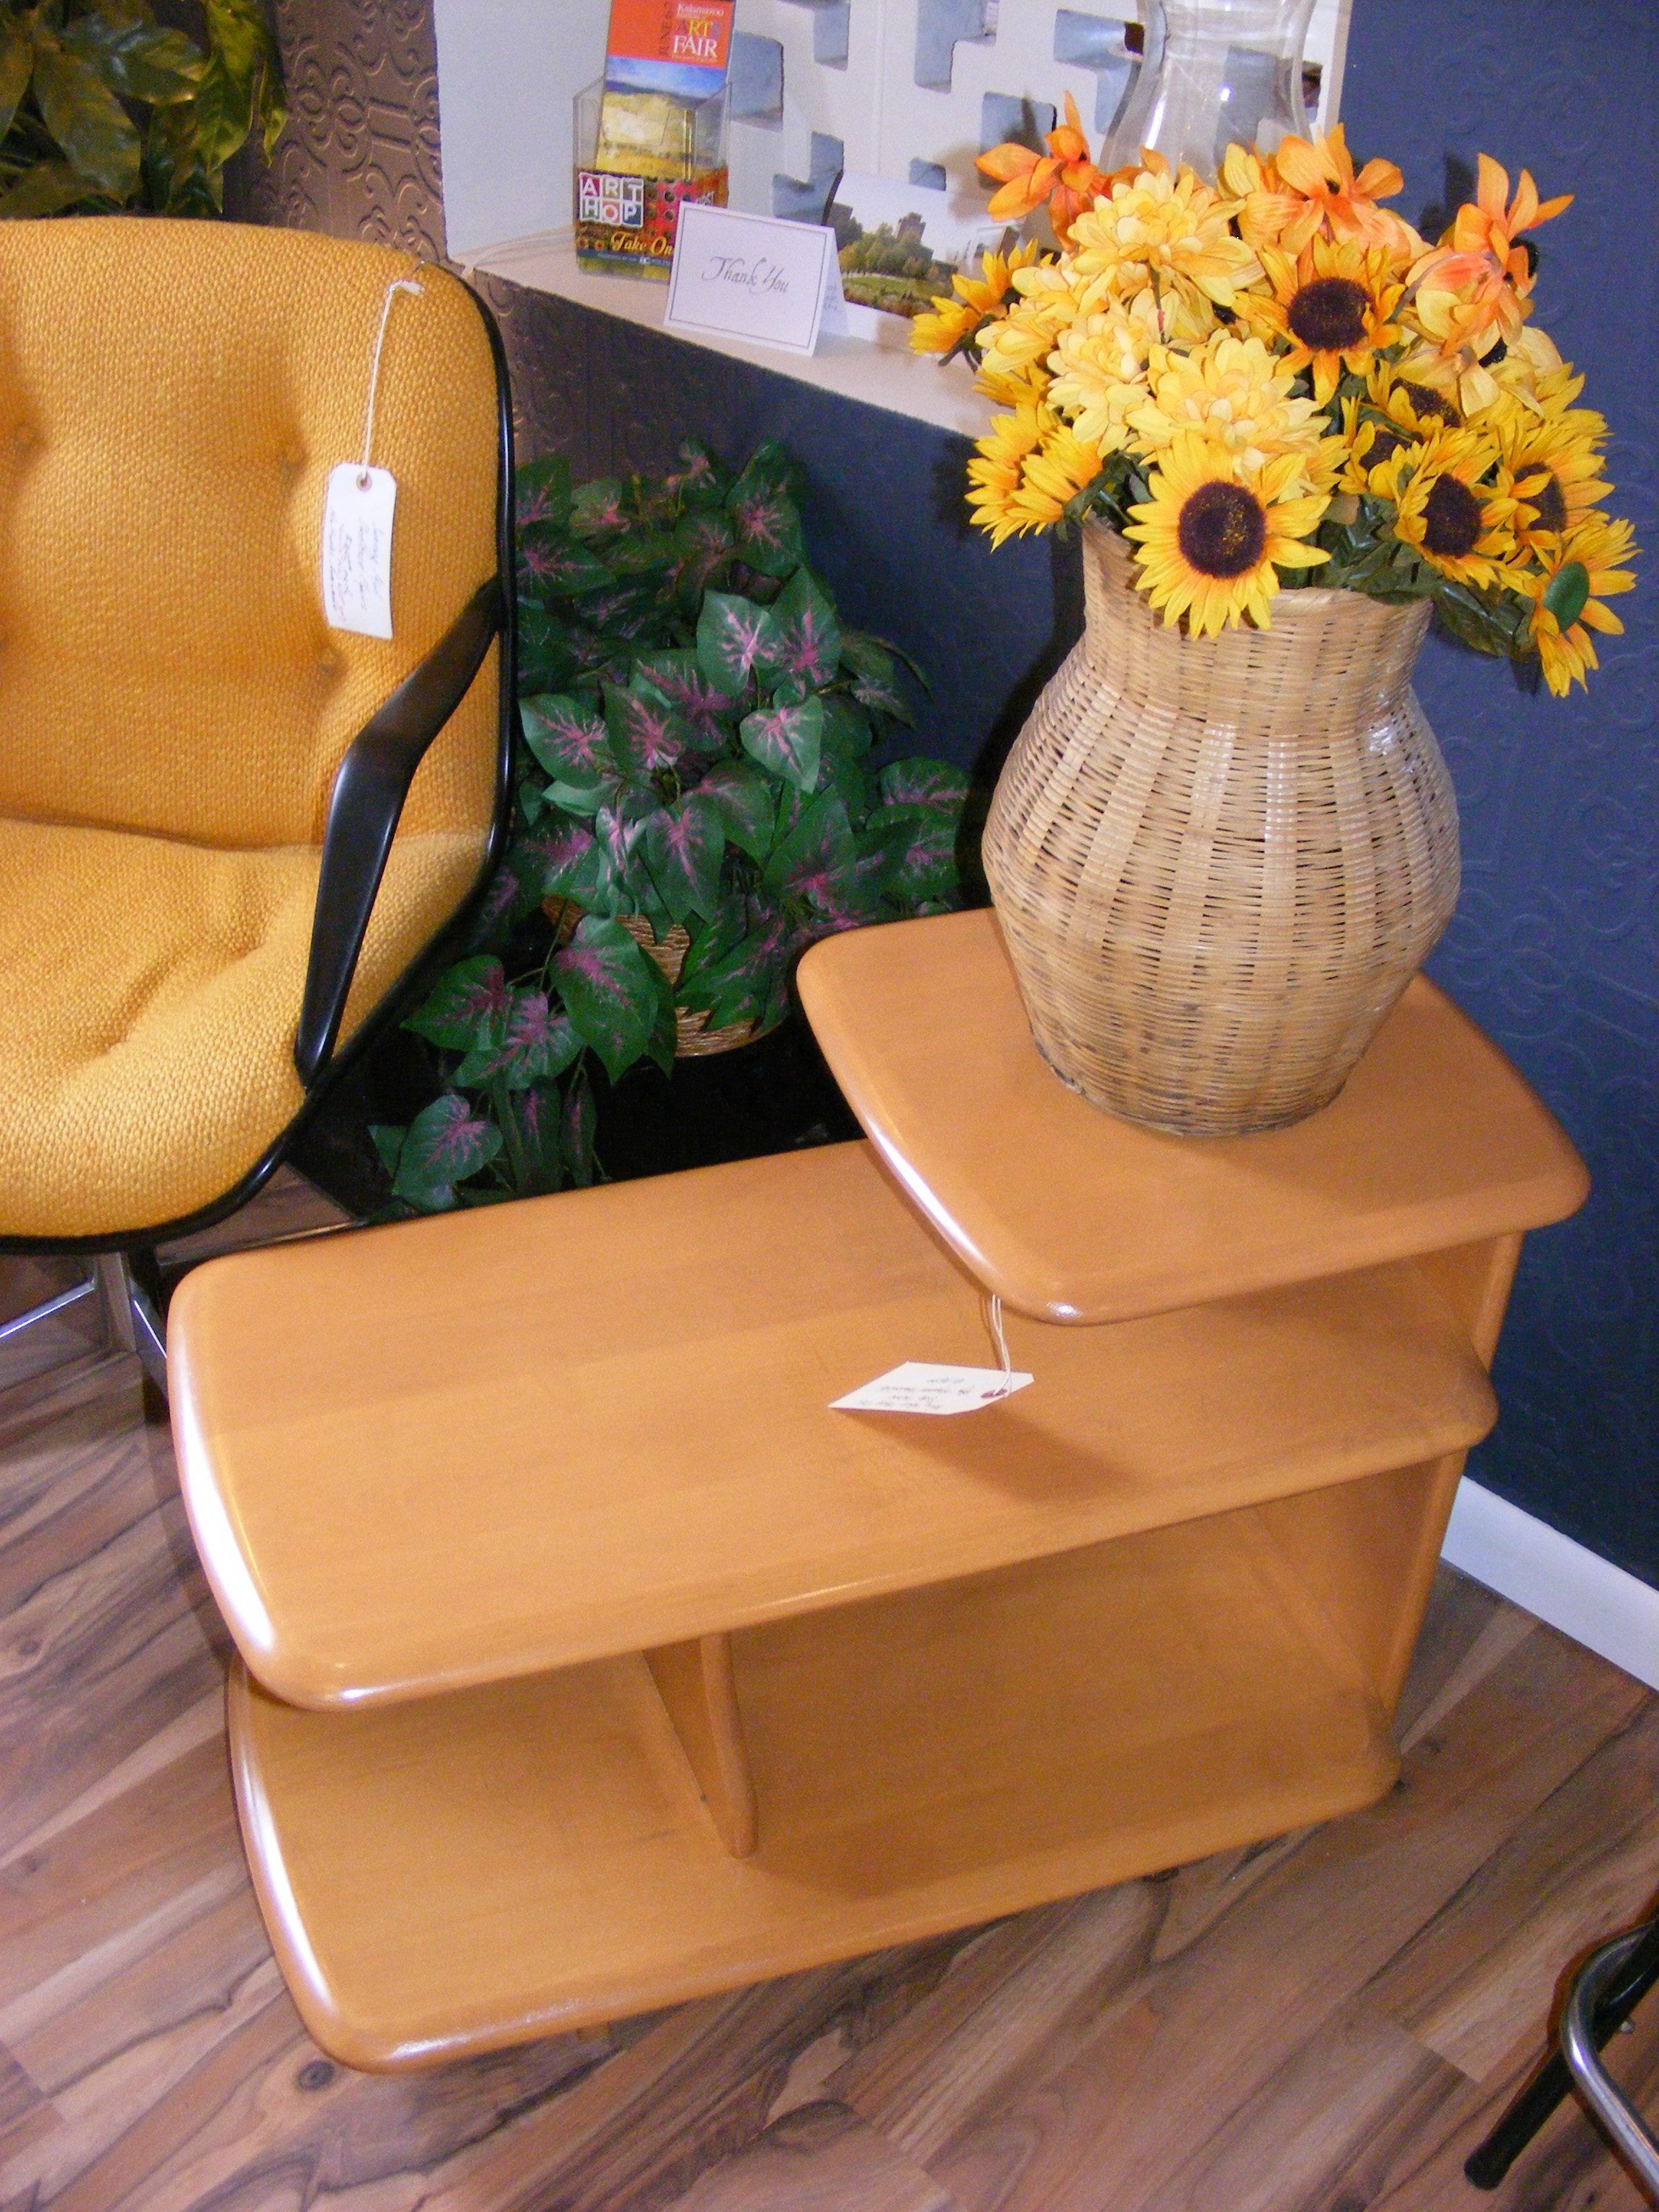 Very Rare 3 Tier Side Table By Heywood Wakefield At Retro Kalamazoo Vintage Furniture Mid Century Modern Home Accessories